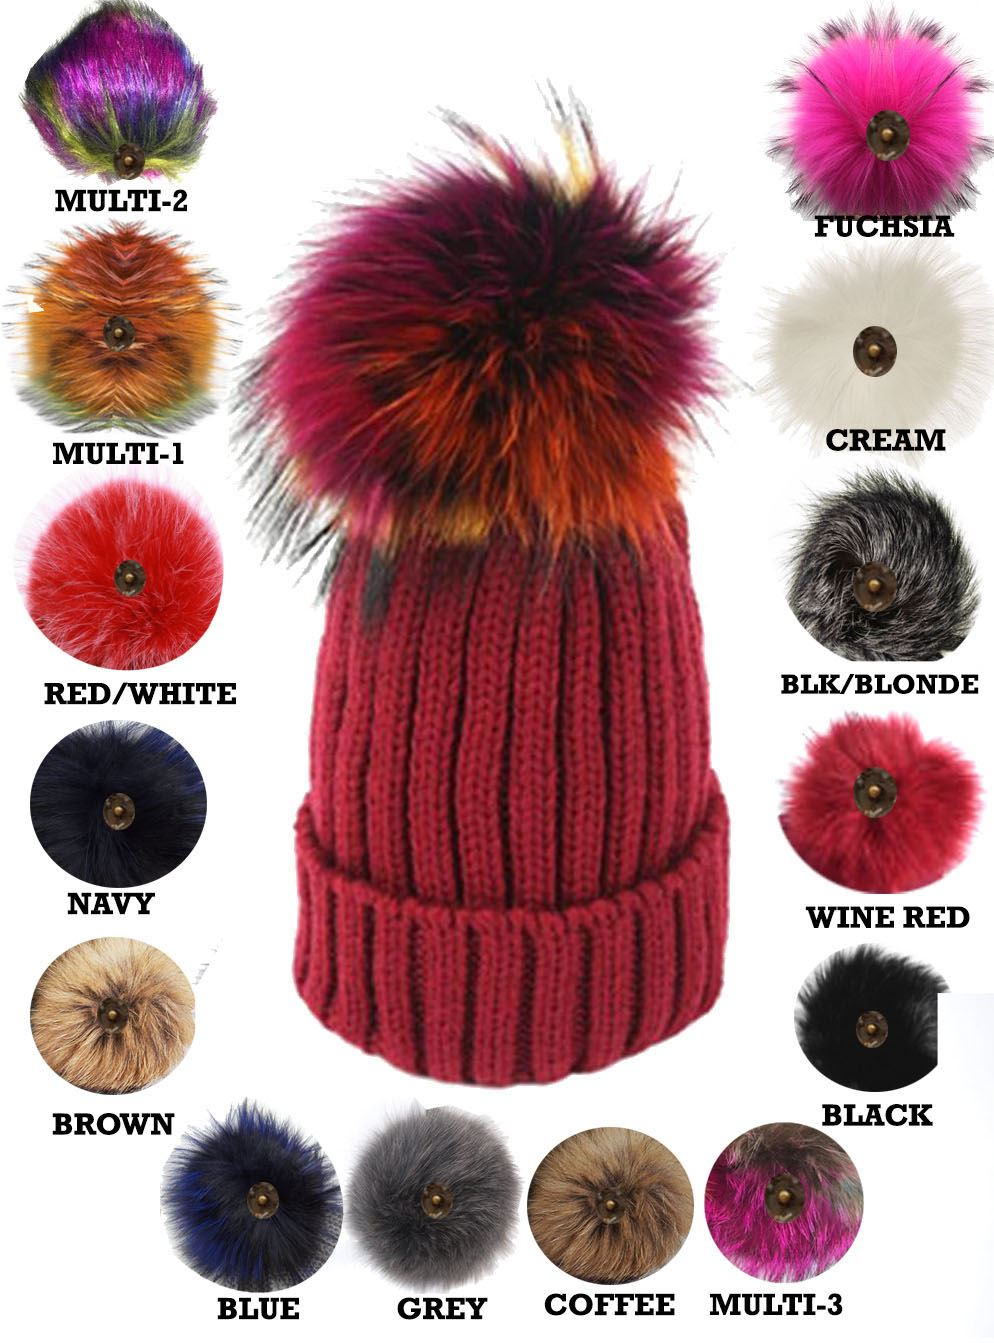 824f8f383 Details about New Ladies Knitted Detachable Faux Fur Pom Pom Customizable  Bobble Hat